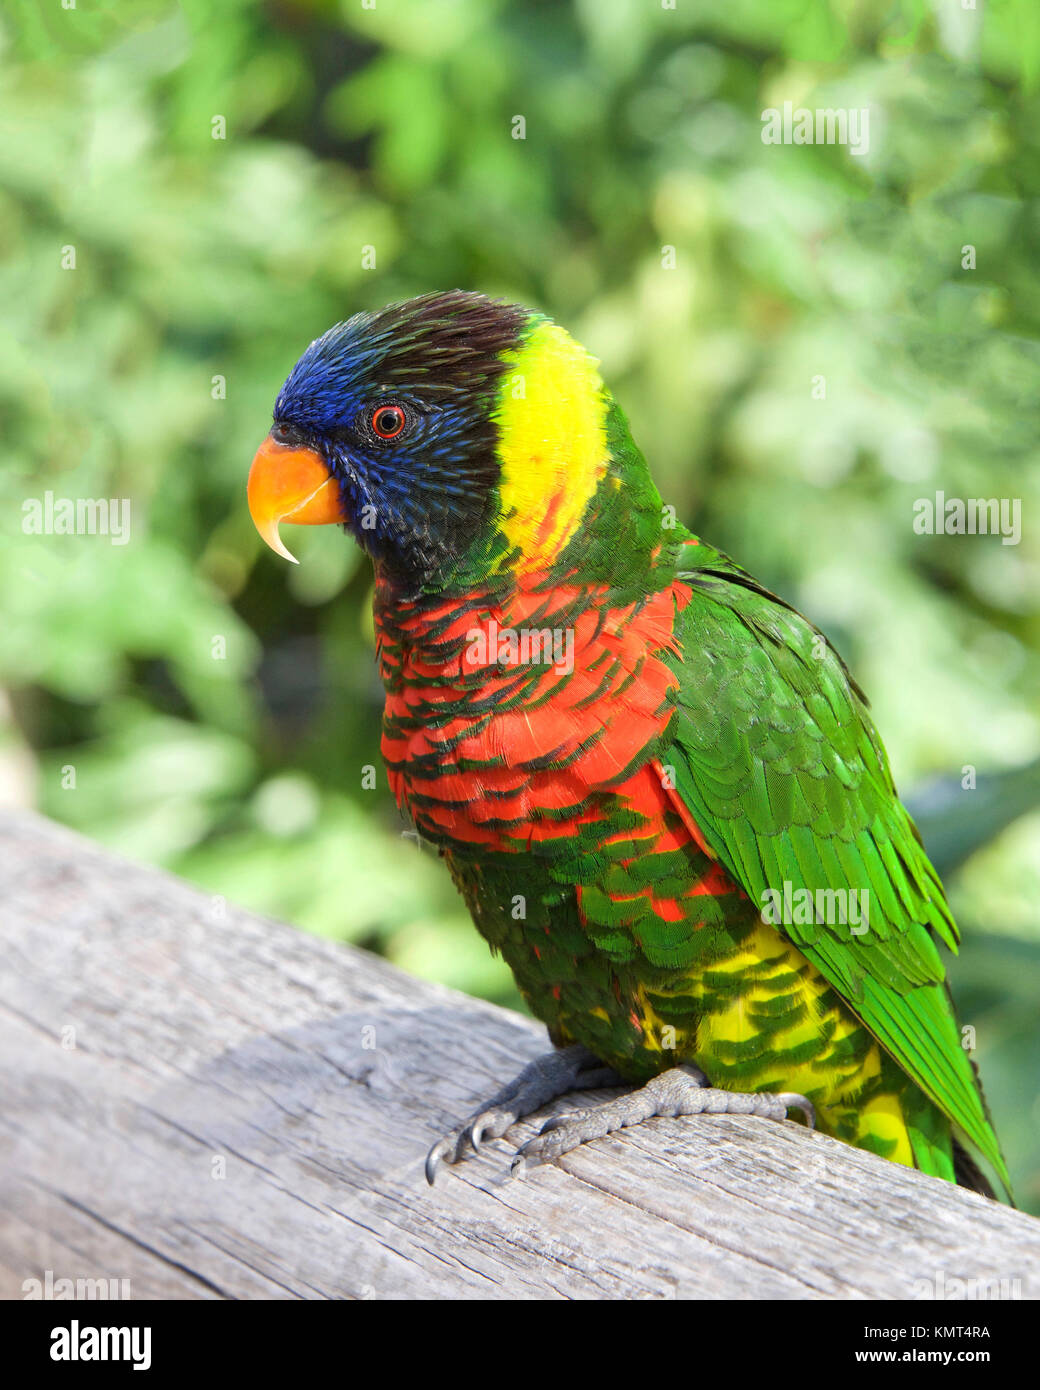 One Lorikeet sitting on a wood fence watching viewer. Lories and lorikeets are small to medium-sized arboreal parrots - Stock Image